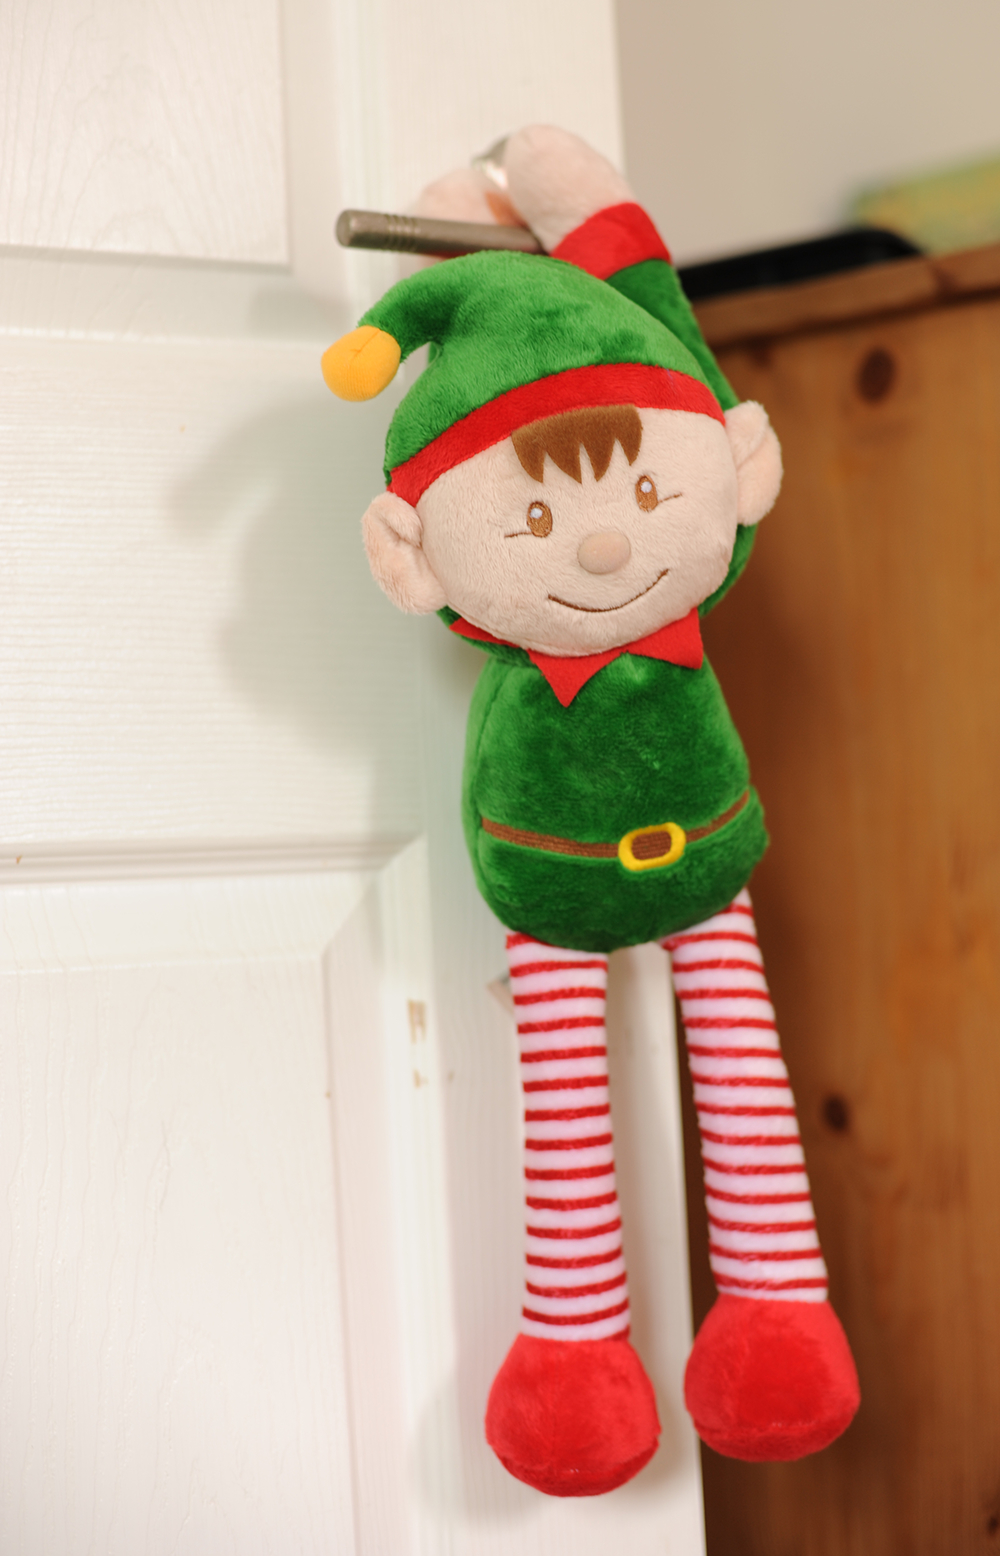 Christmas elf dangling from door handle